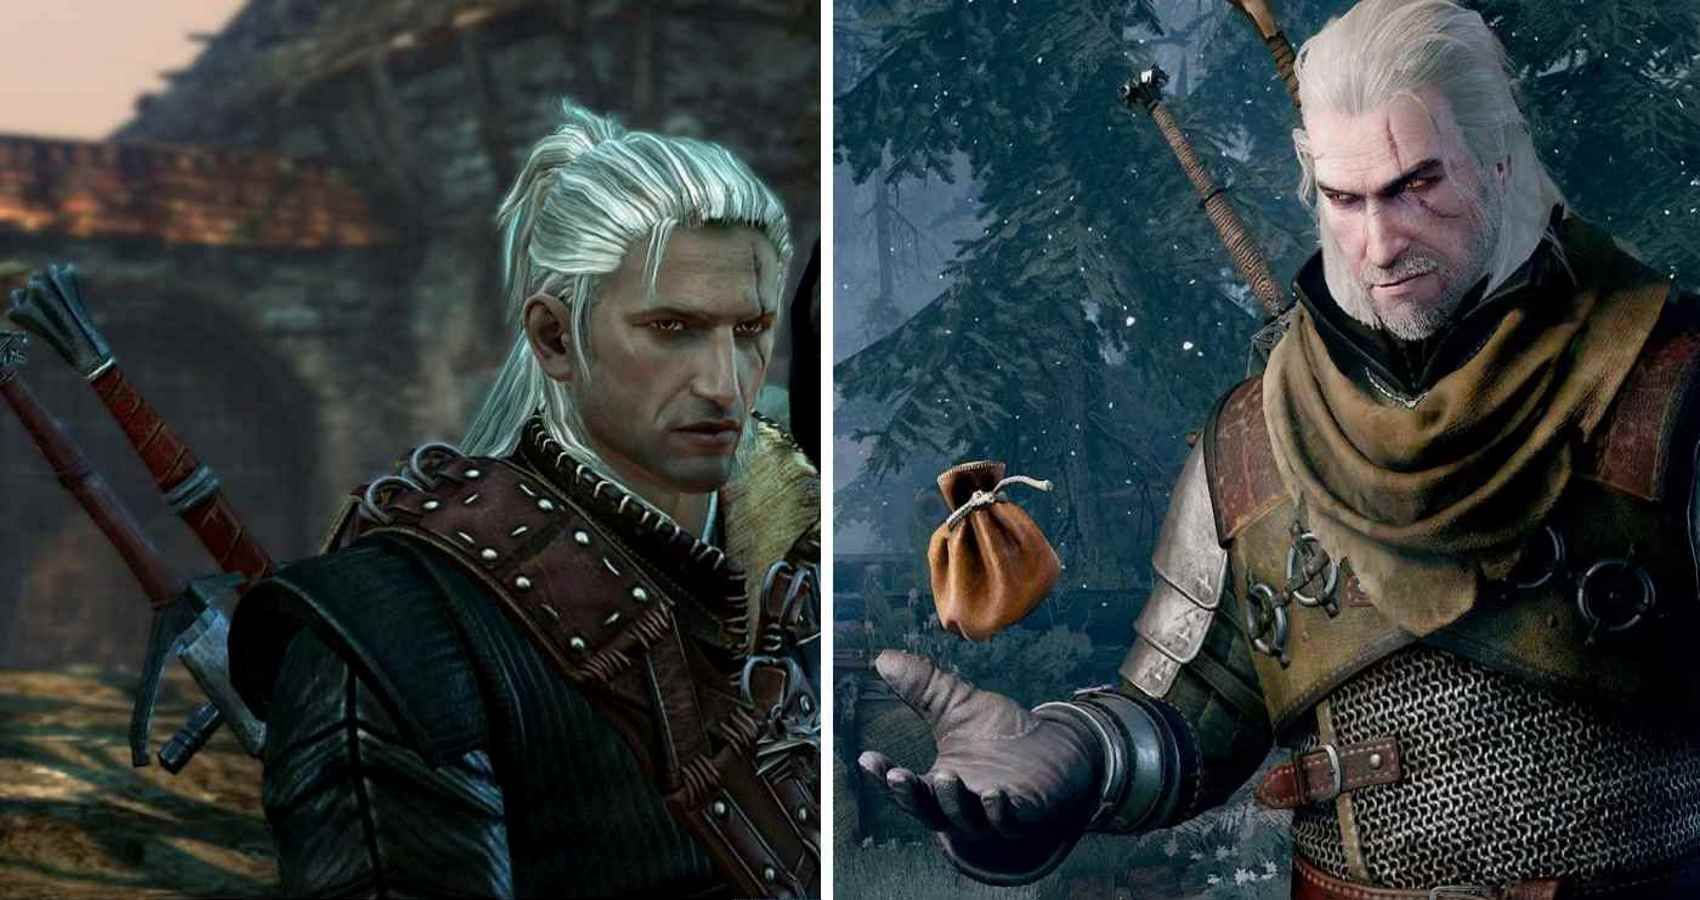 Witcher 2 Vs Witcher 3 5 Reasons The 2nd Is Best In The Series 5 Why 3 Is Better